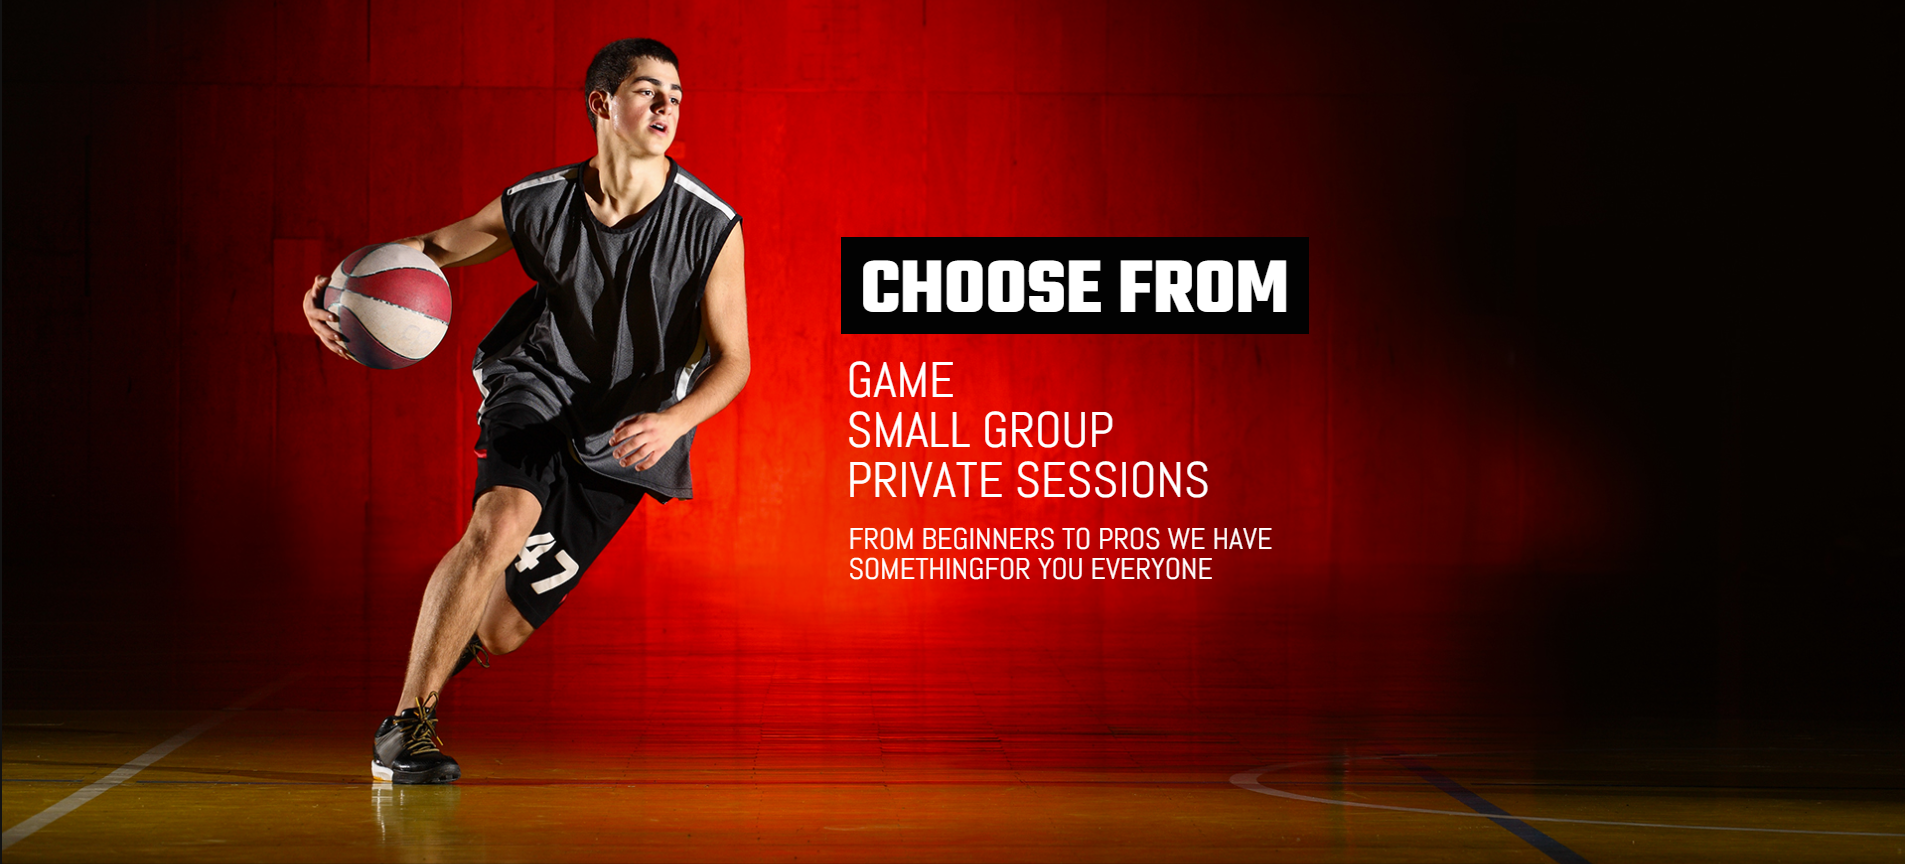 From beginners to pros, we have something for everyone.